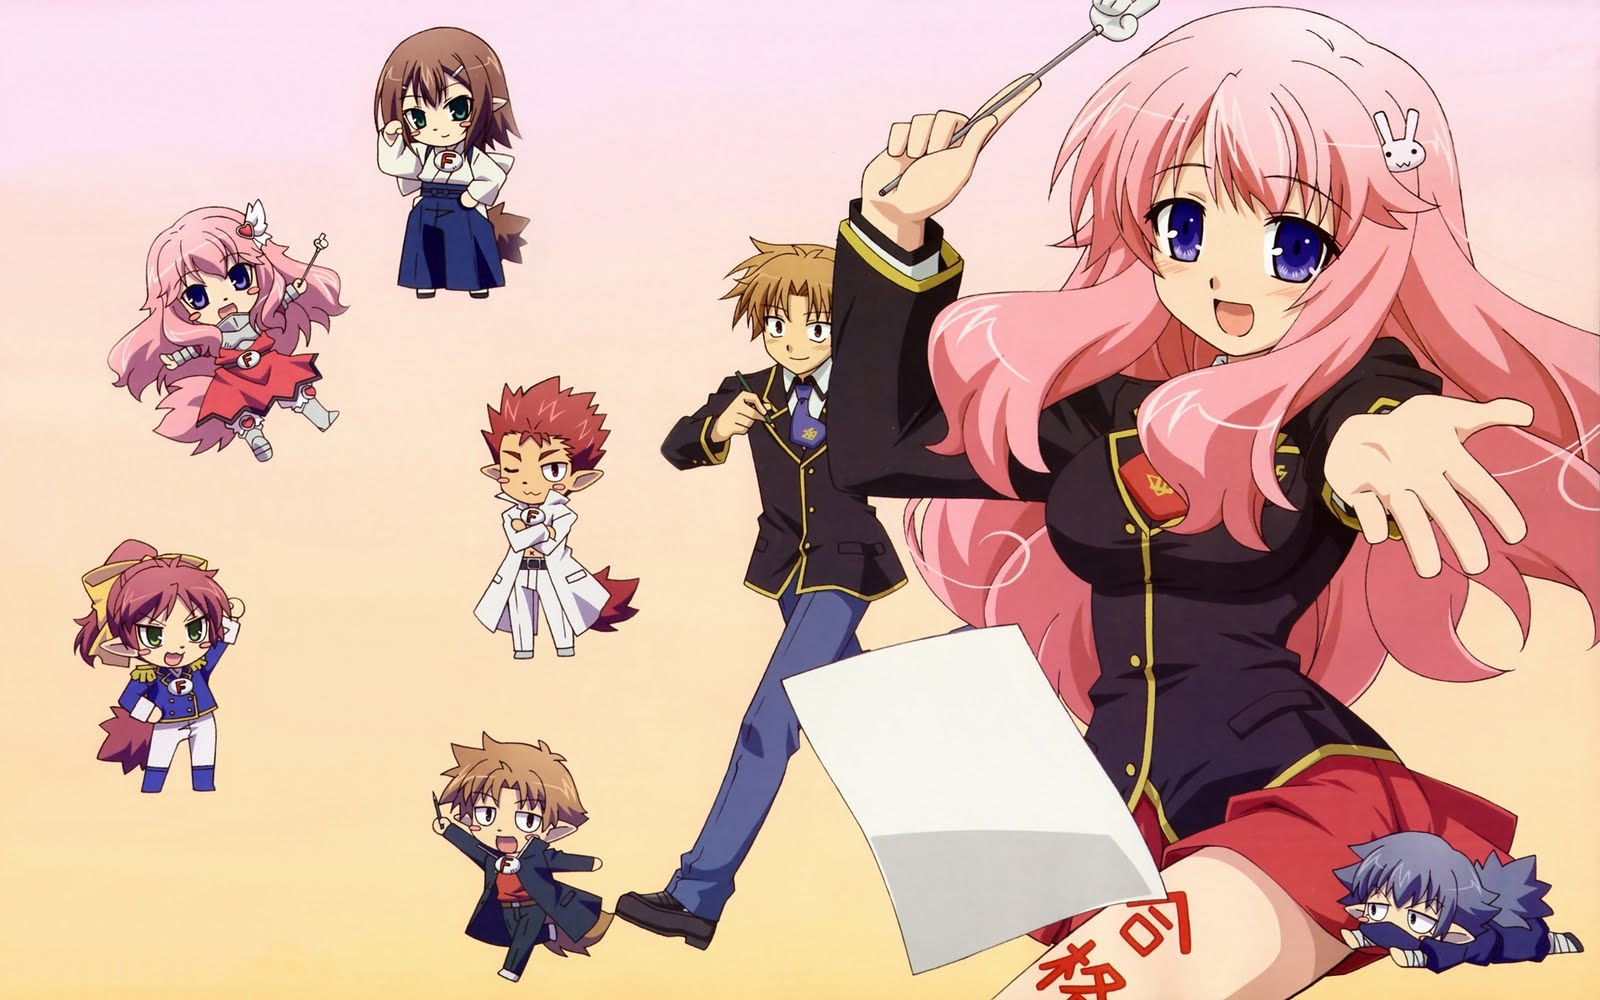 http://4.bp.blogspot.com/-A6qIFgxhipU/TleZGMFJeoI/AAAAAAAAKuU/VR5Ts4lIgf8/s1600/Baka+to+Test+to+Shoukanjuu+Wallpapers+HQ.jpg